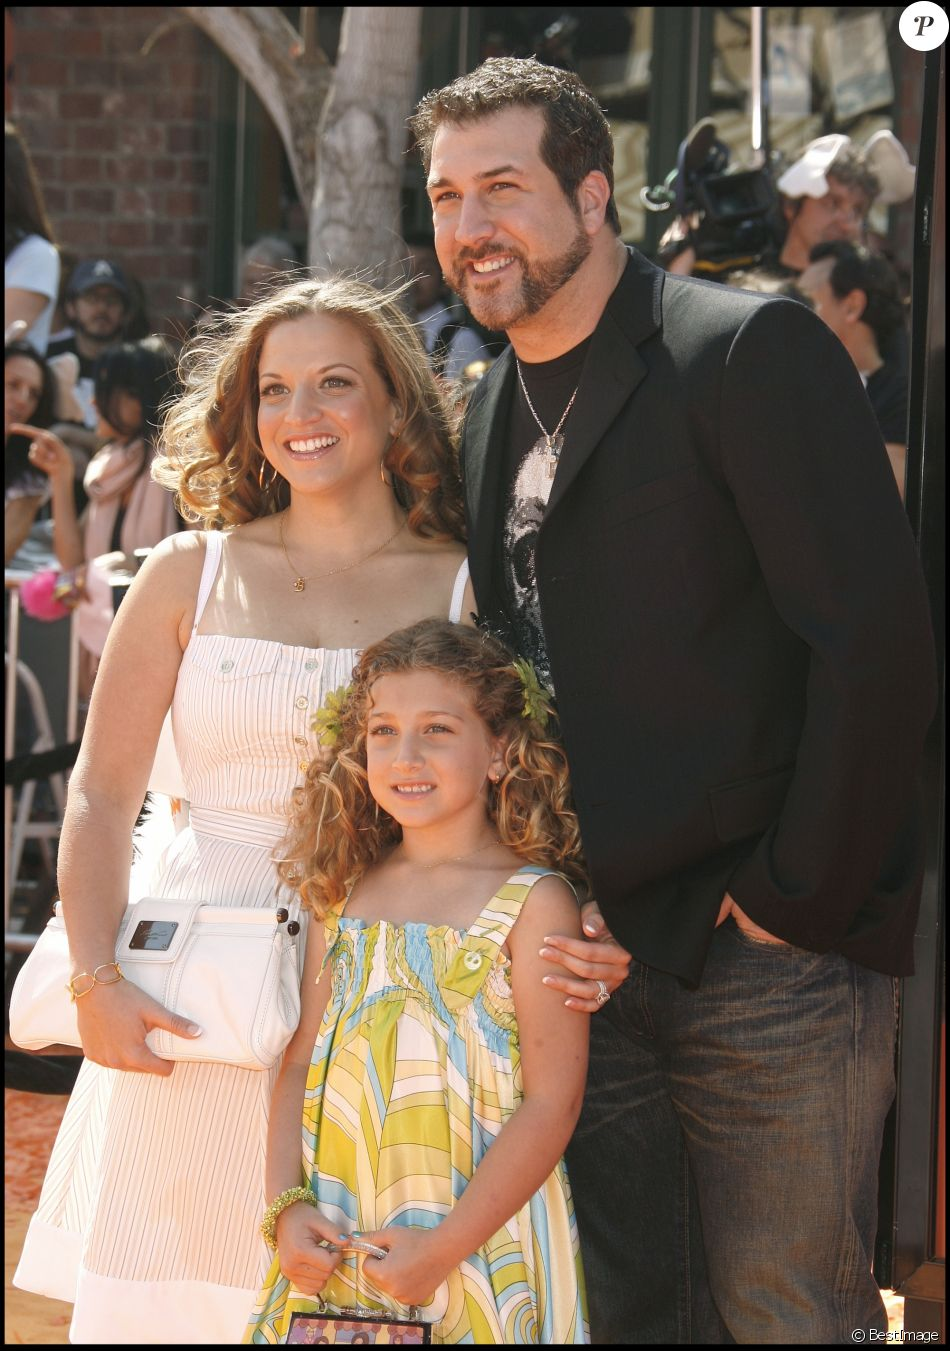 "JOEY FATONE, SA FEMME KELLY ET LEUR FILLE BRIAHNA - PREMIERE DU FILM ""HORTON HEARS A WHO!"" AU MANN VILLAGE THEATRE DE LOS ANGELES ""HORTON HEARS A WHO!"" 08/03/2008 - Los Angeles"